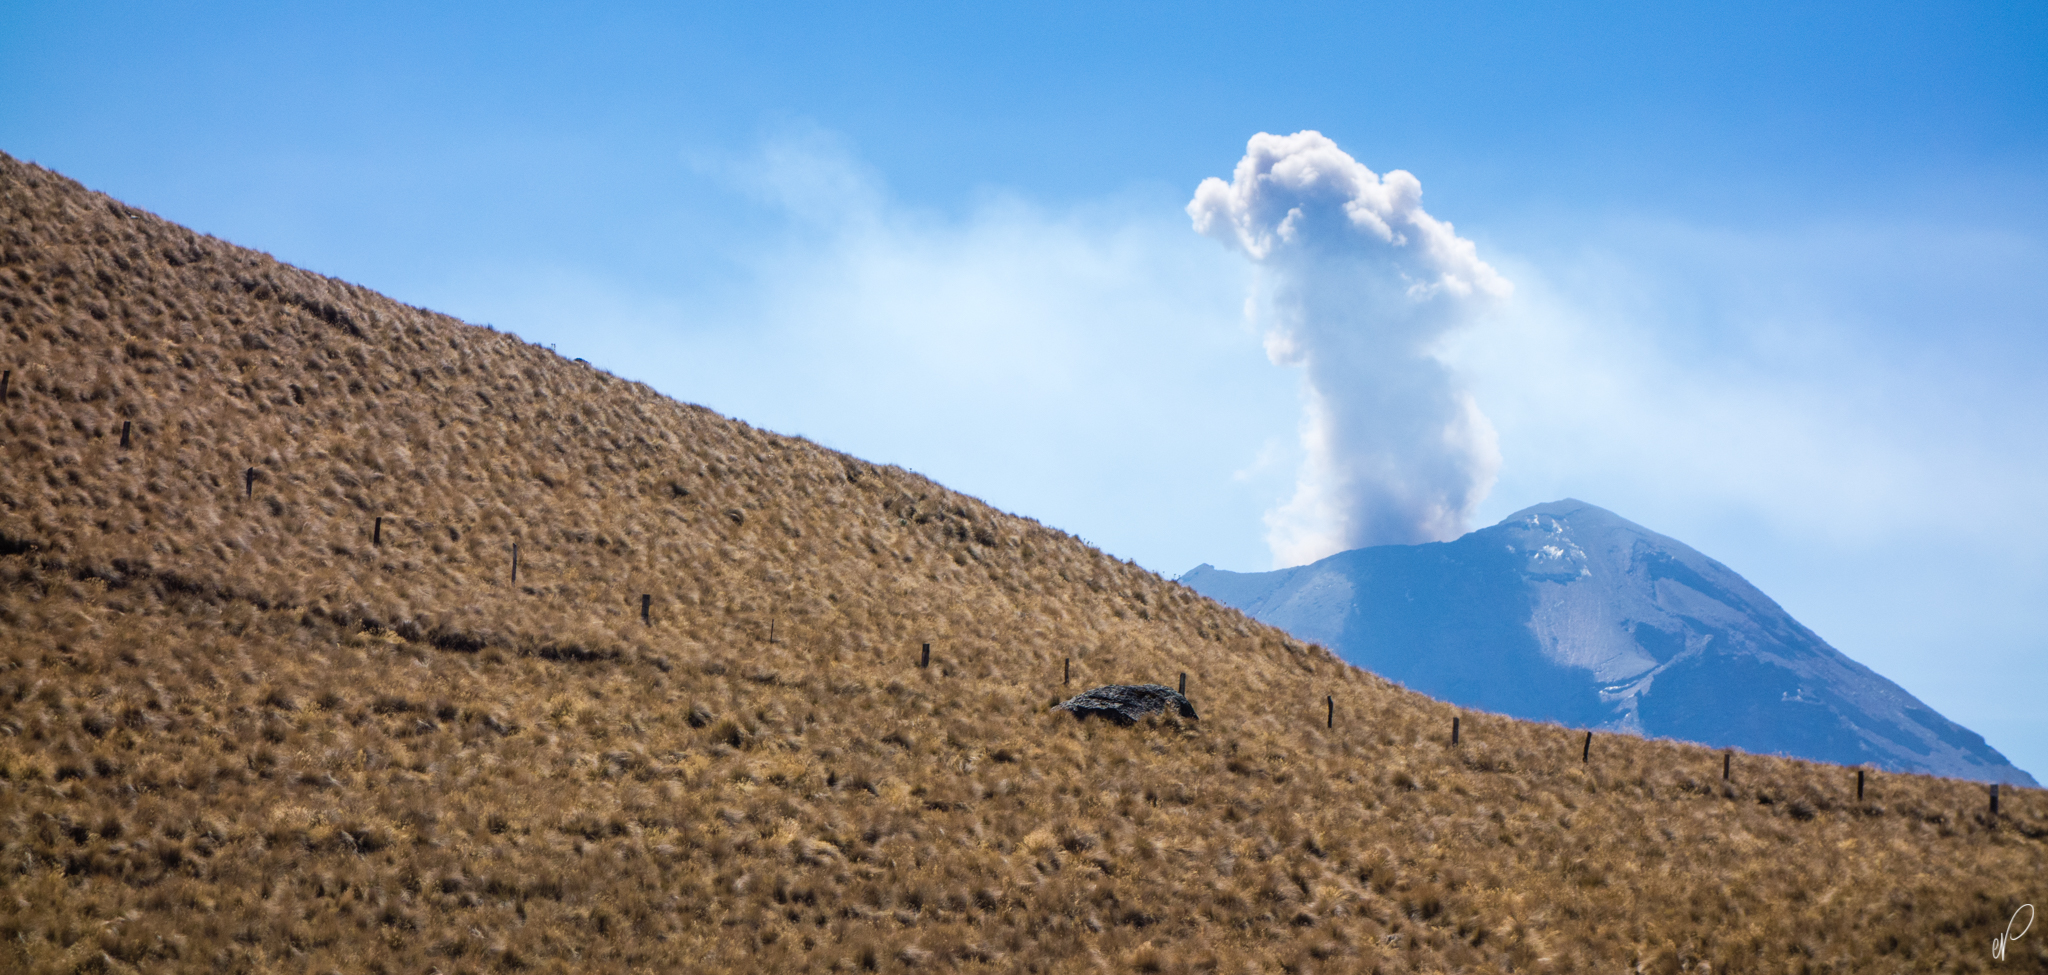 Mini-eruption of Popocatepetl